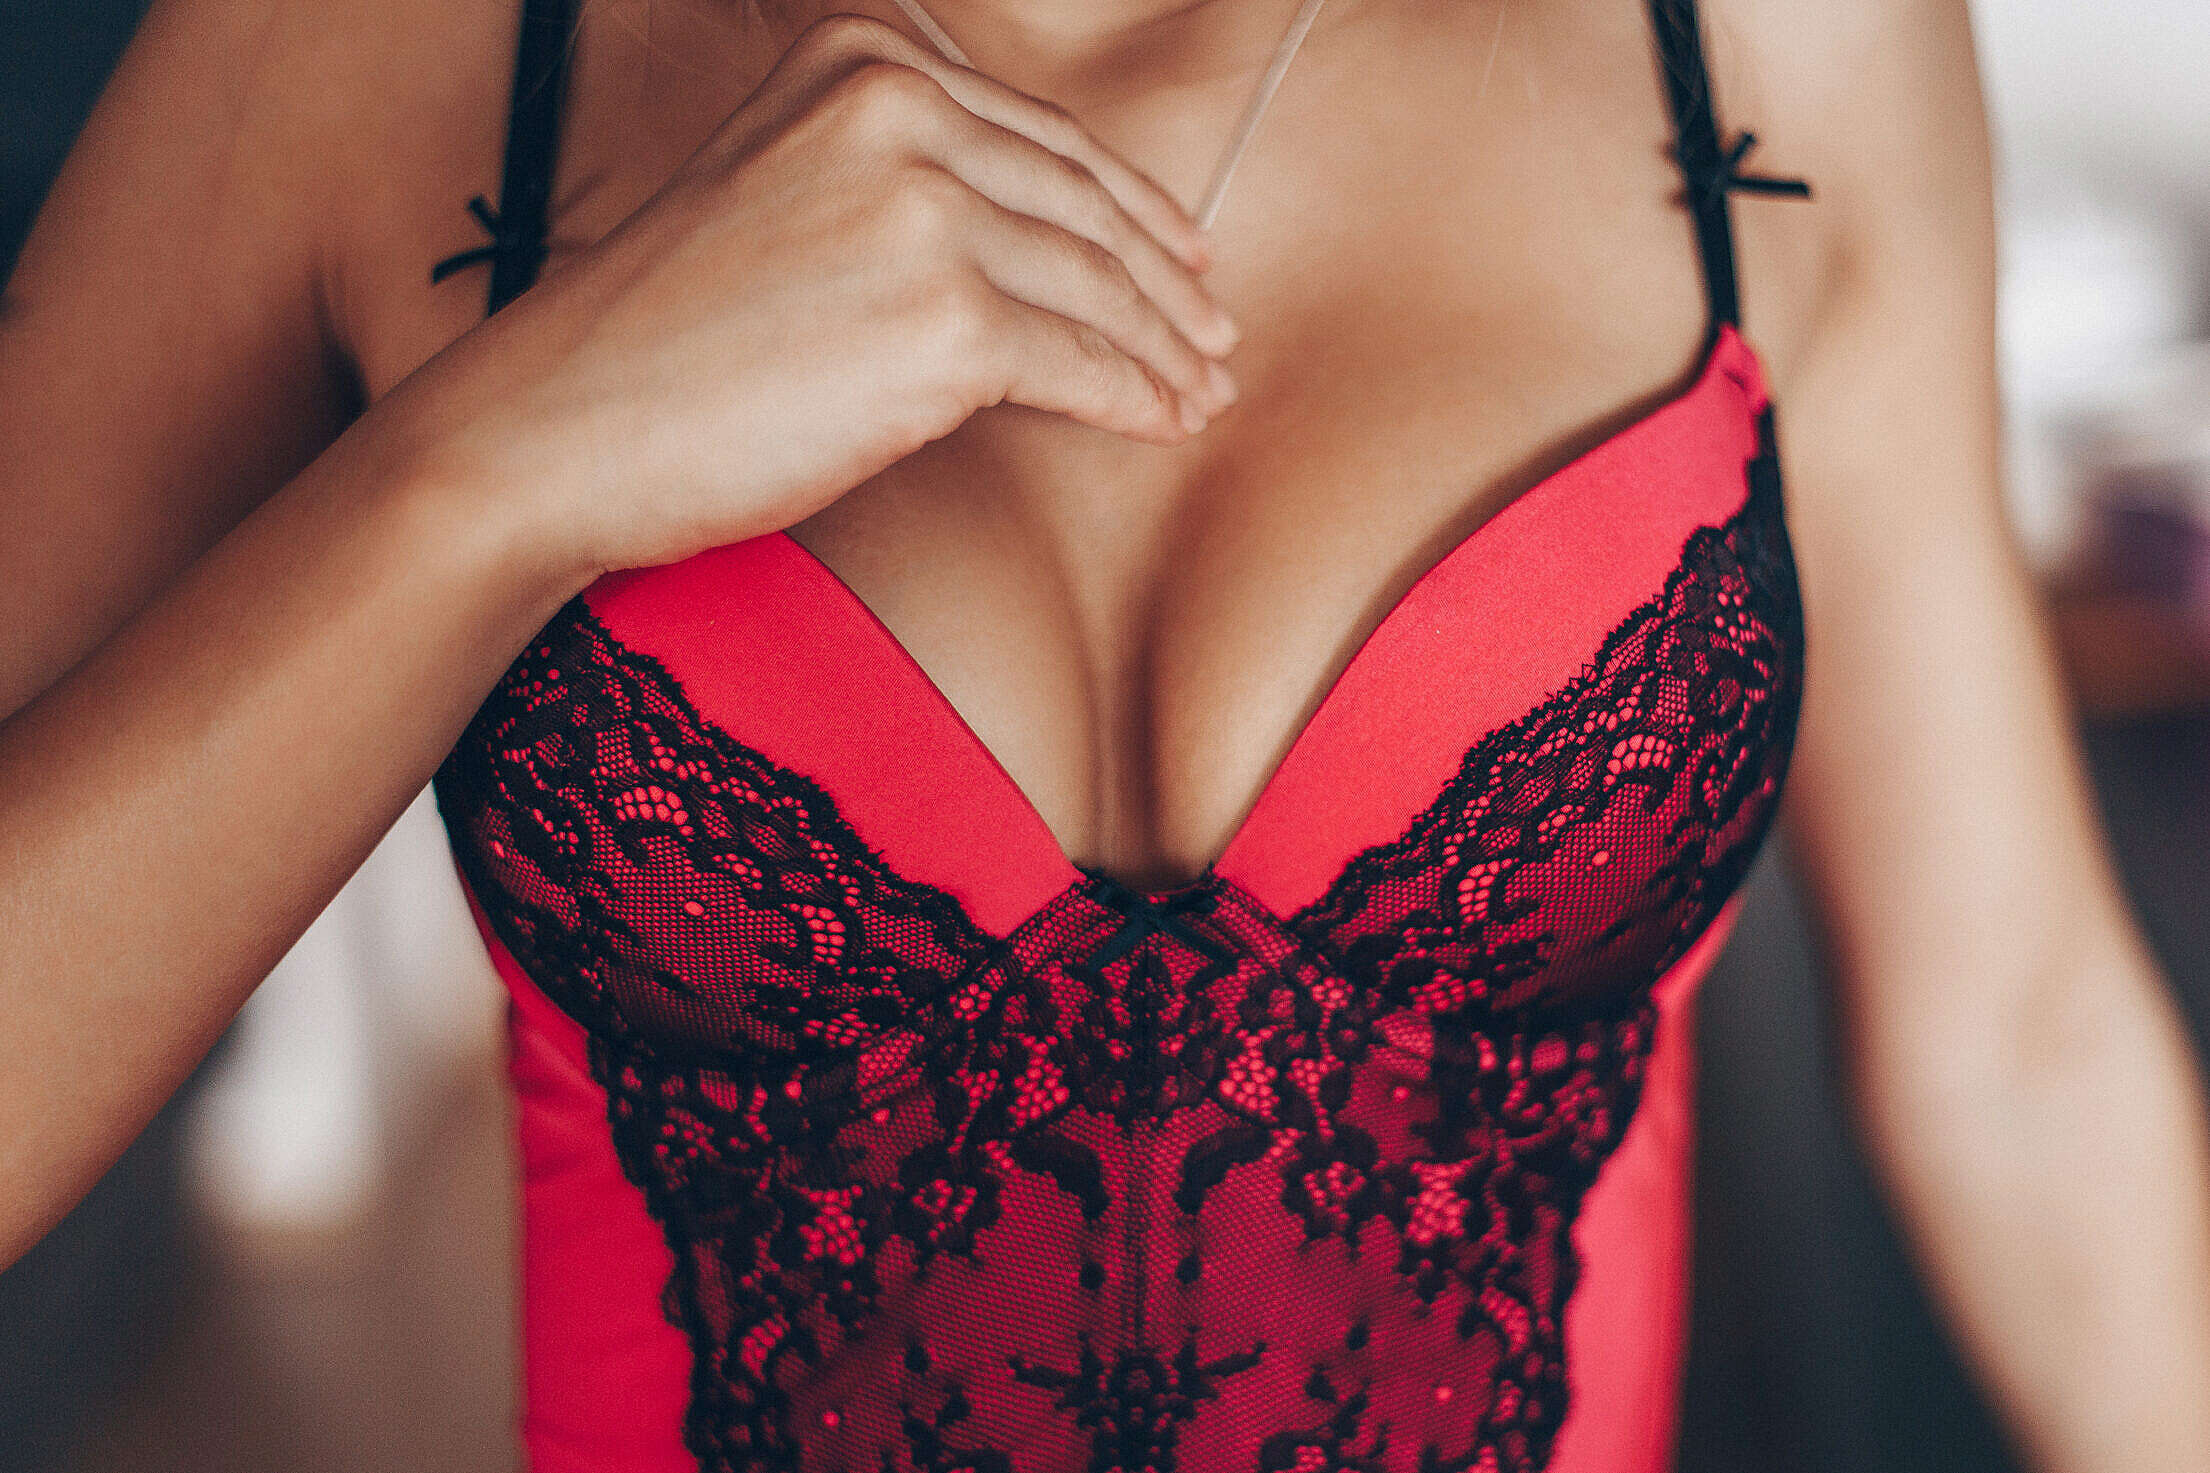 Young Sexy Woman in Corset Free Stock Photo